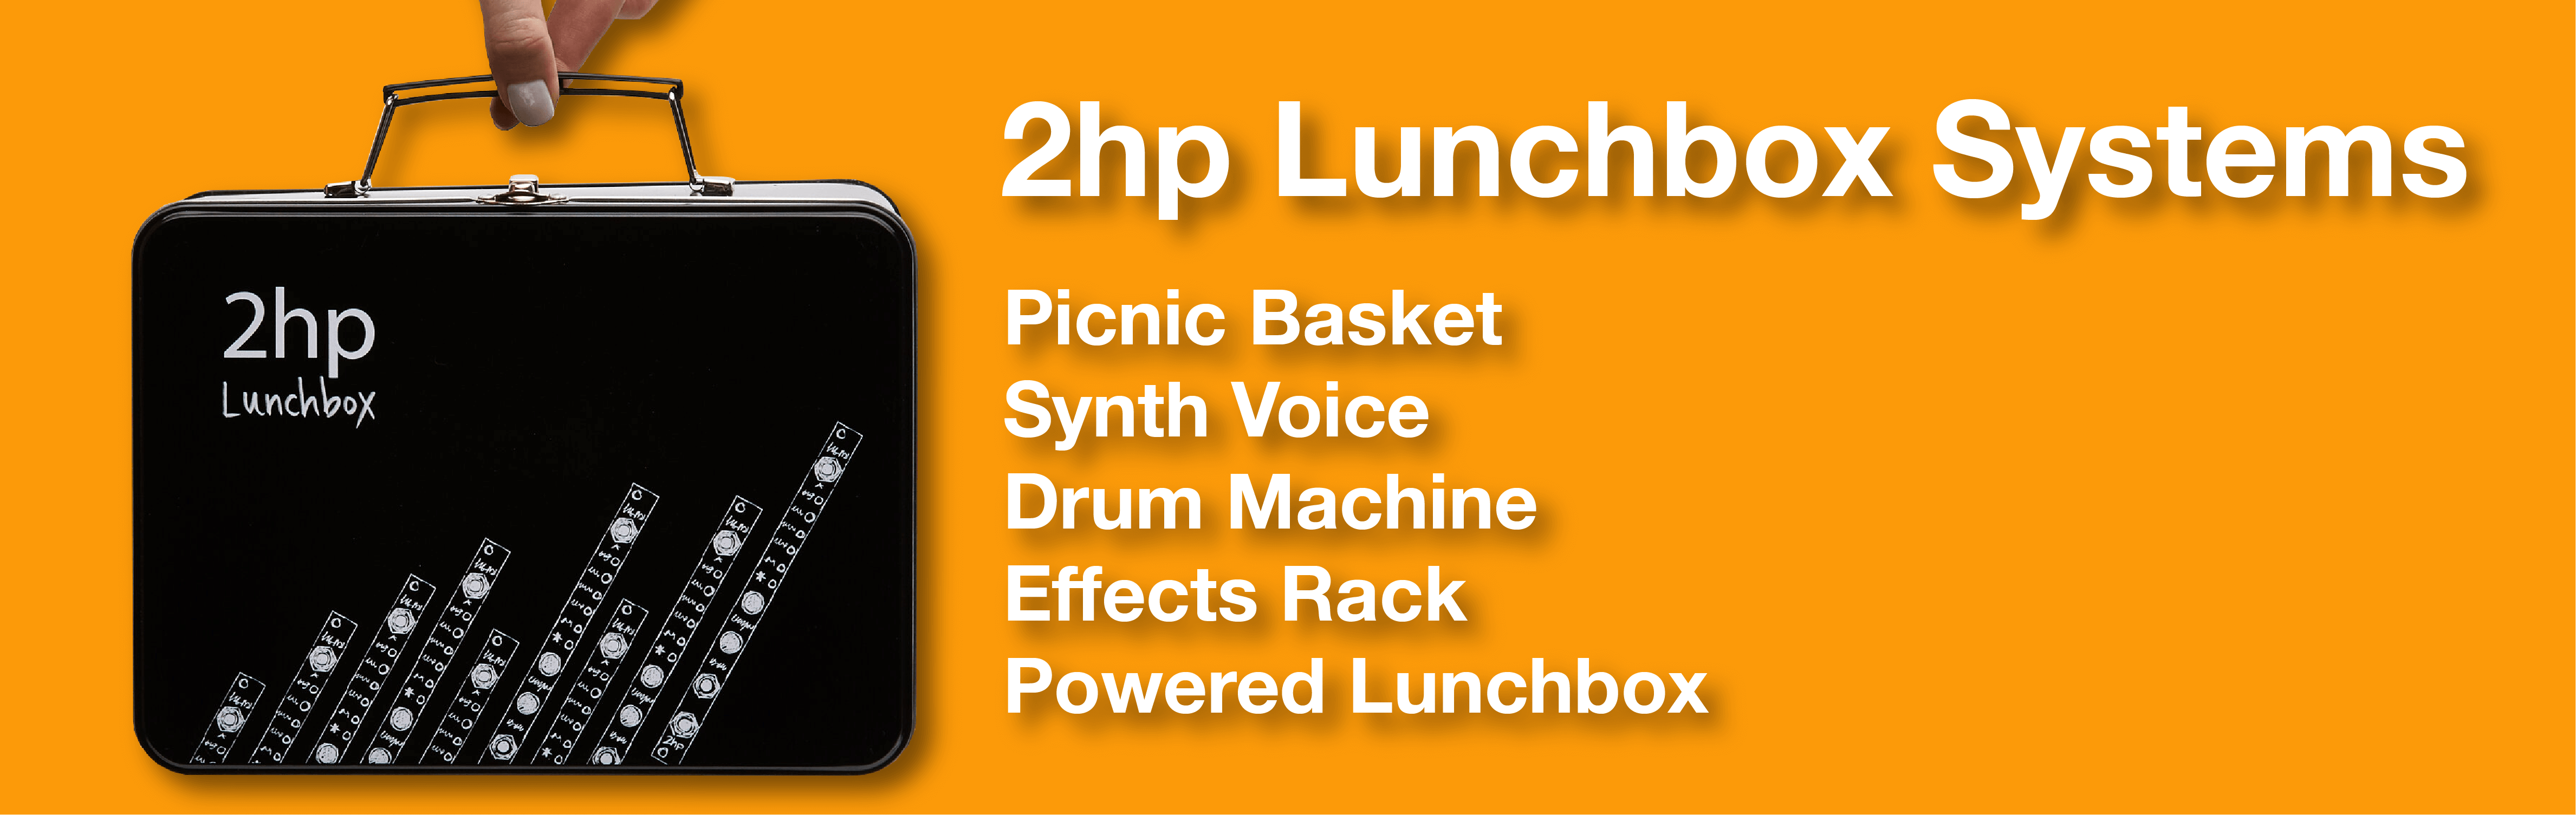 2hp Lunchbox Systems: Picnic Basket, Synth Voice, Drum Machine, Effects Rack